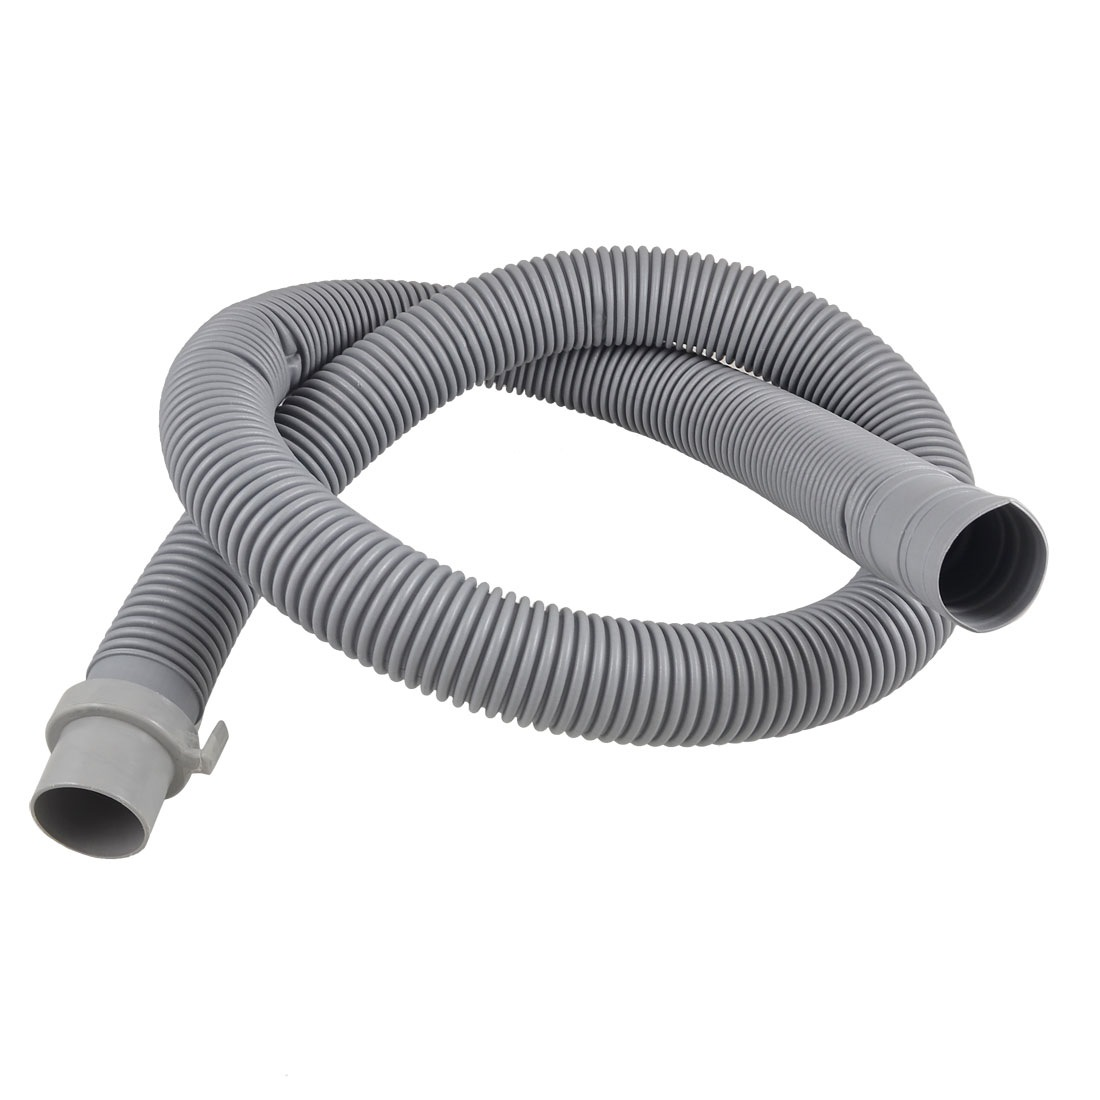 Washing Machine Drain Hose -outlet